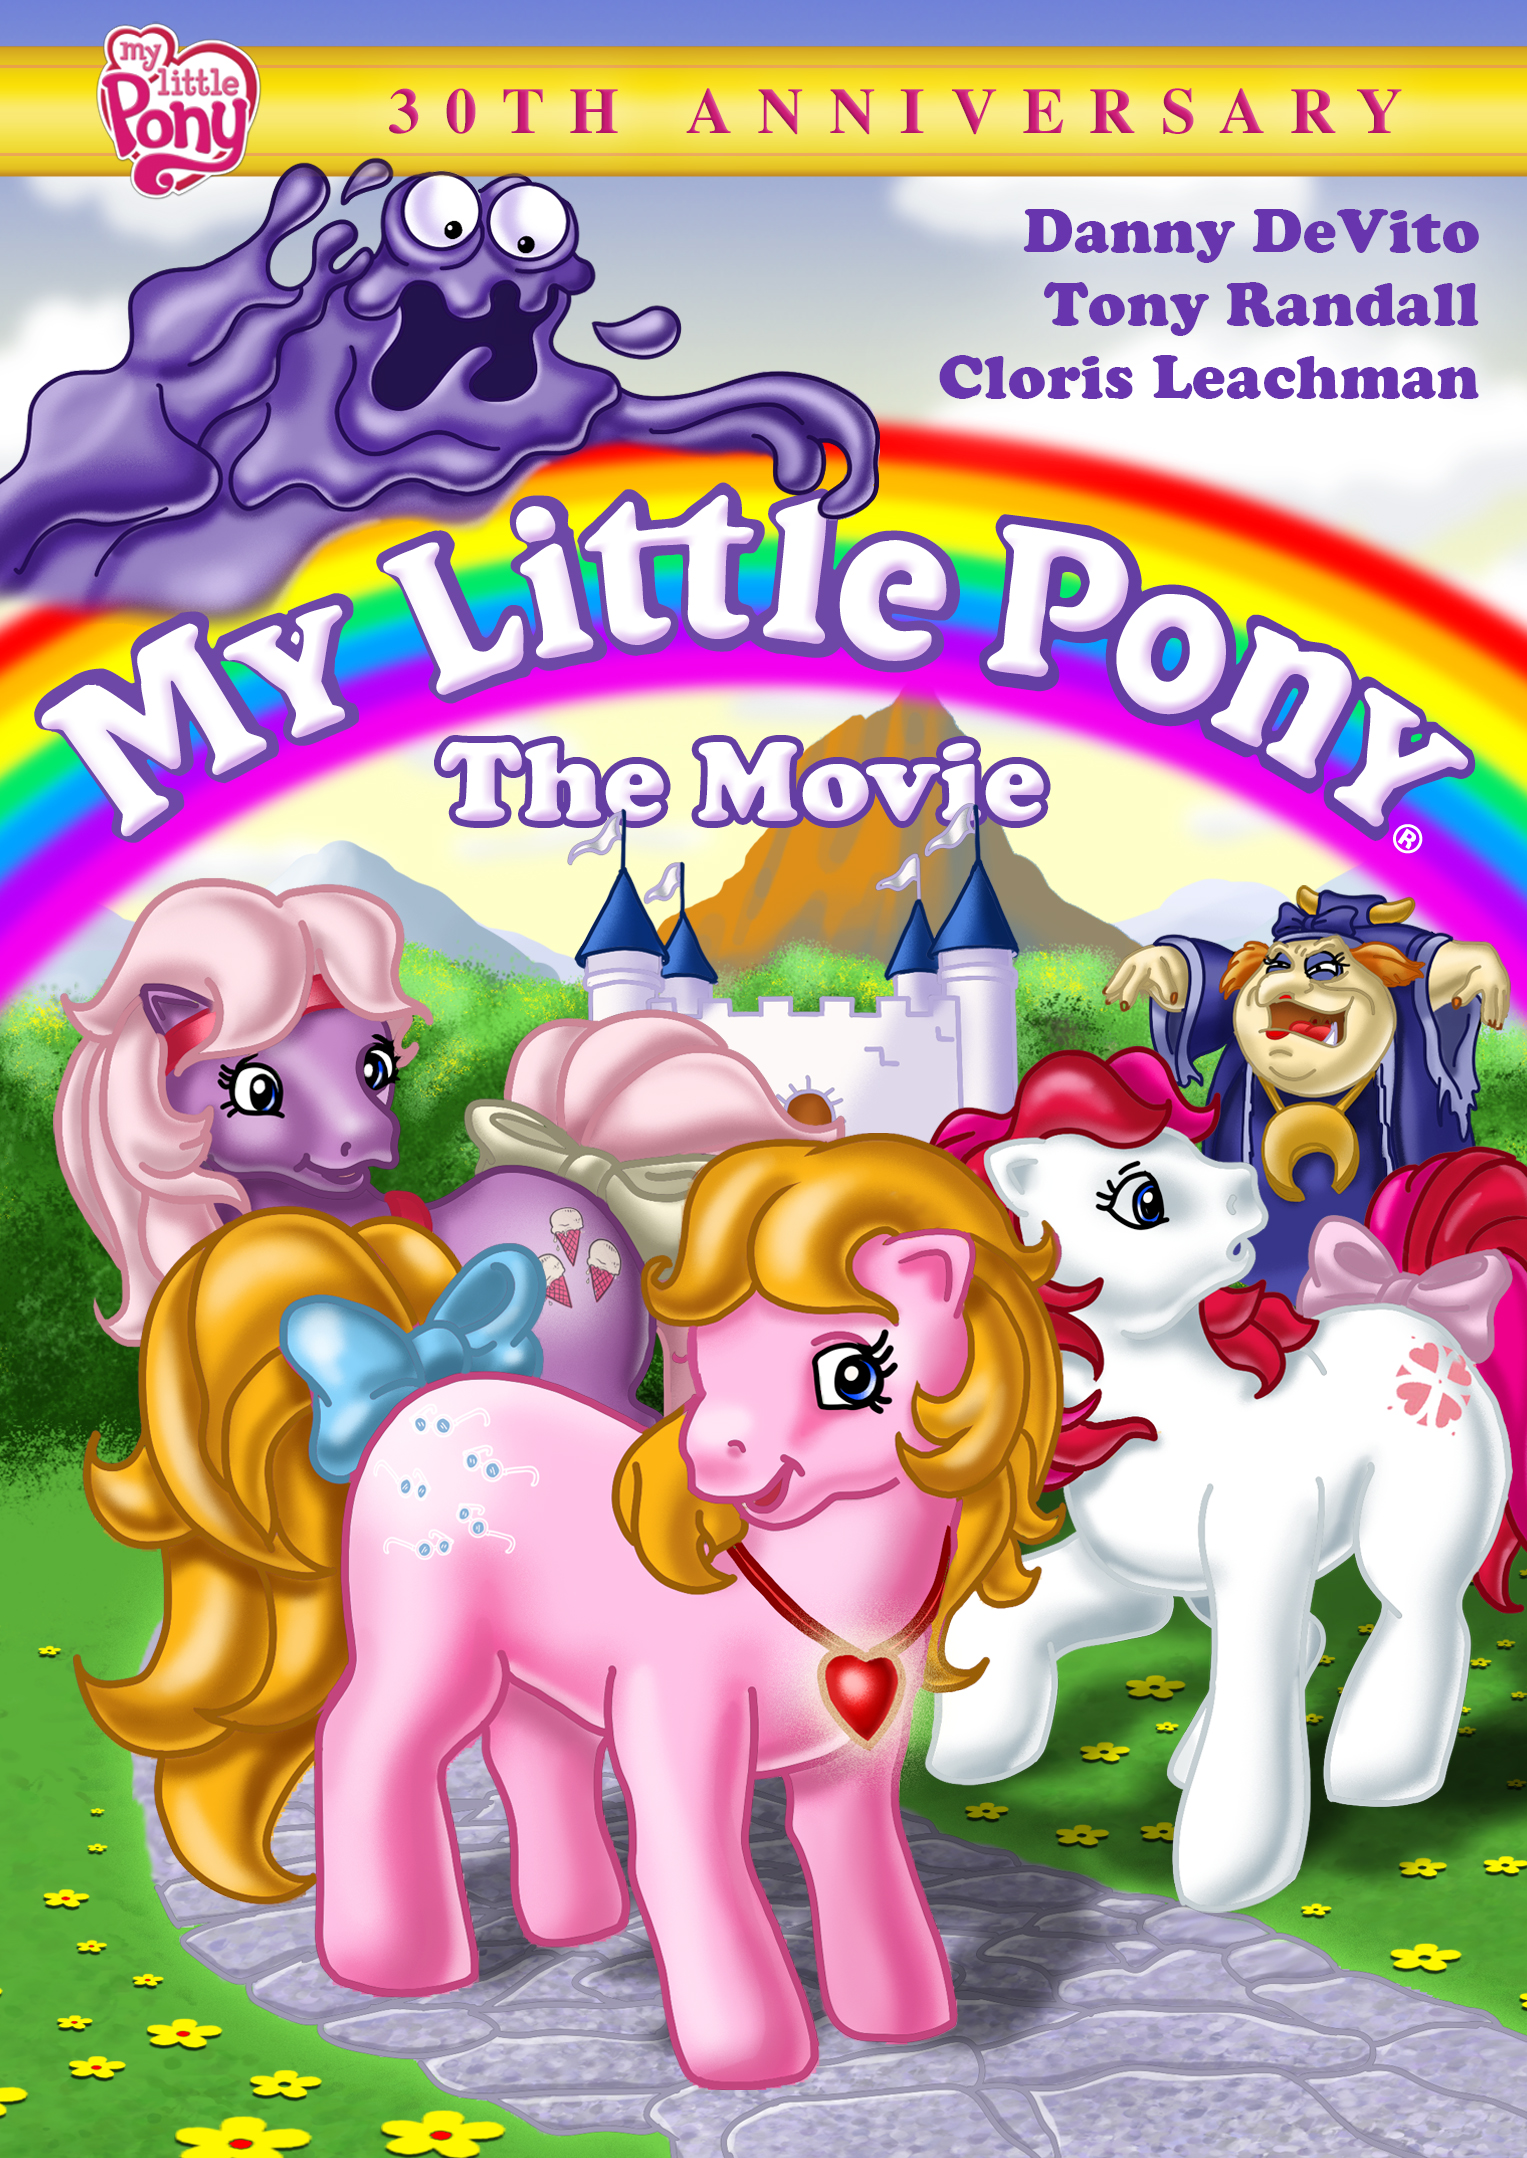 My Little Pony The Movie Original 30th Anniversary